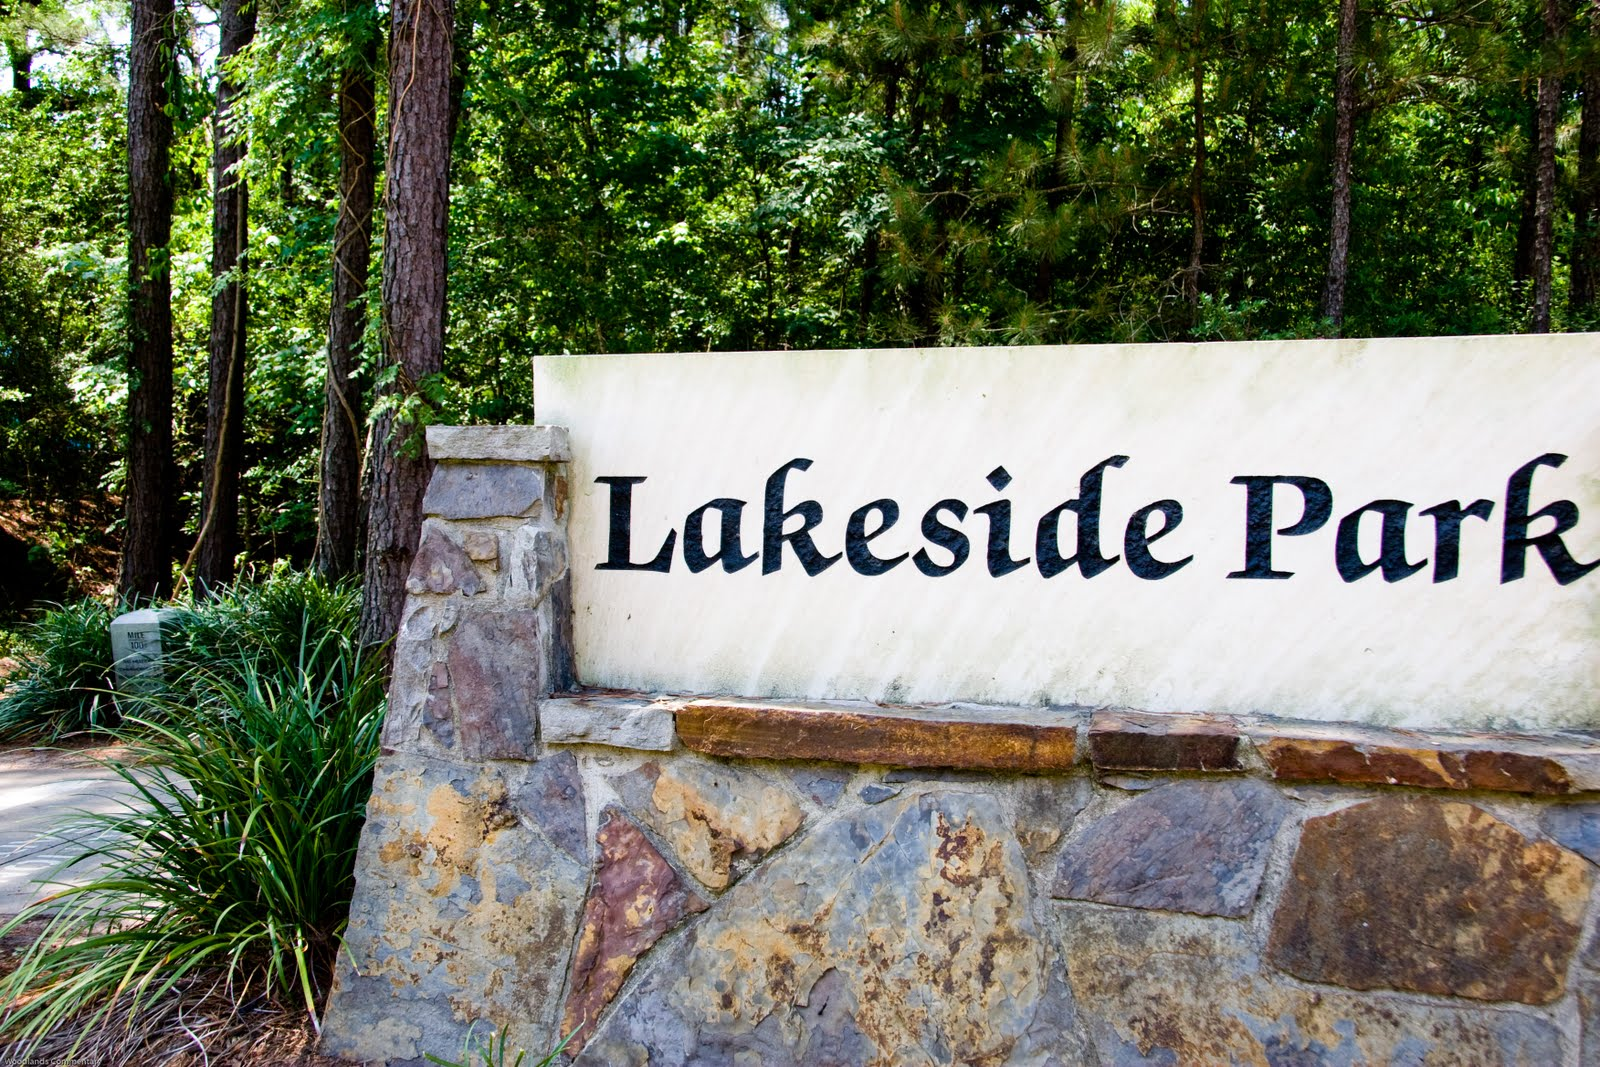 The Woodlands Texas Parks: Lakeside Park in The Woodlands